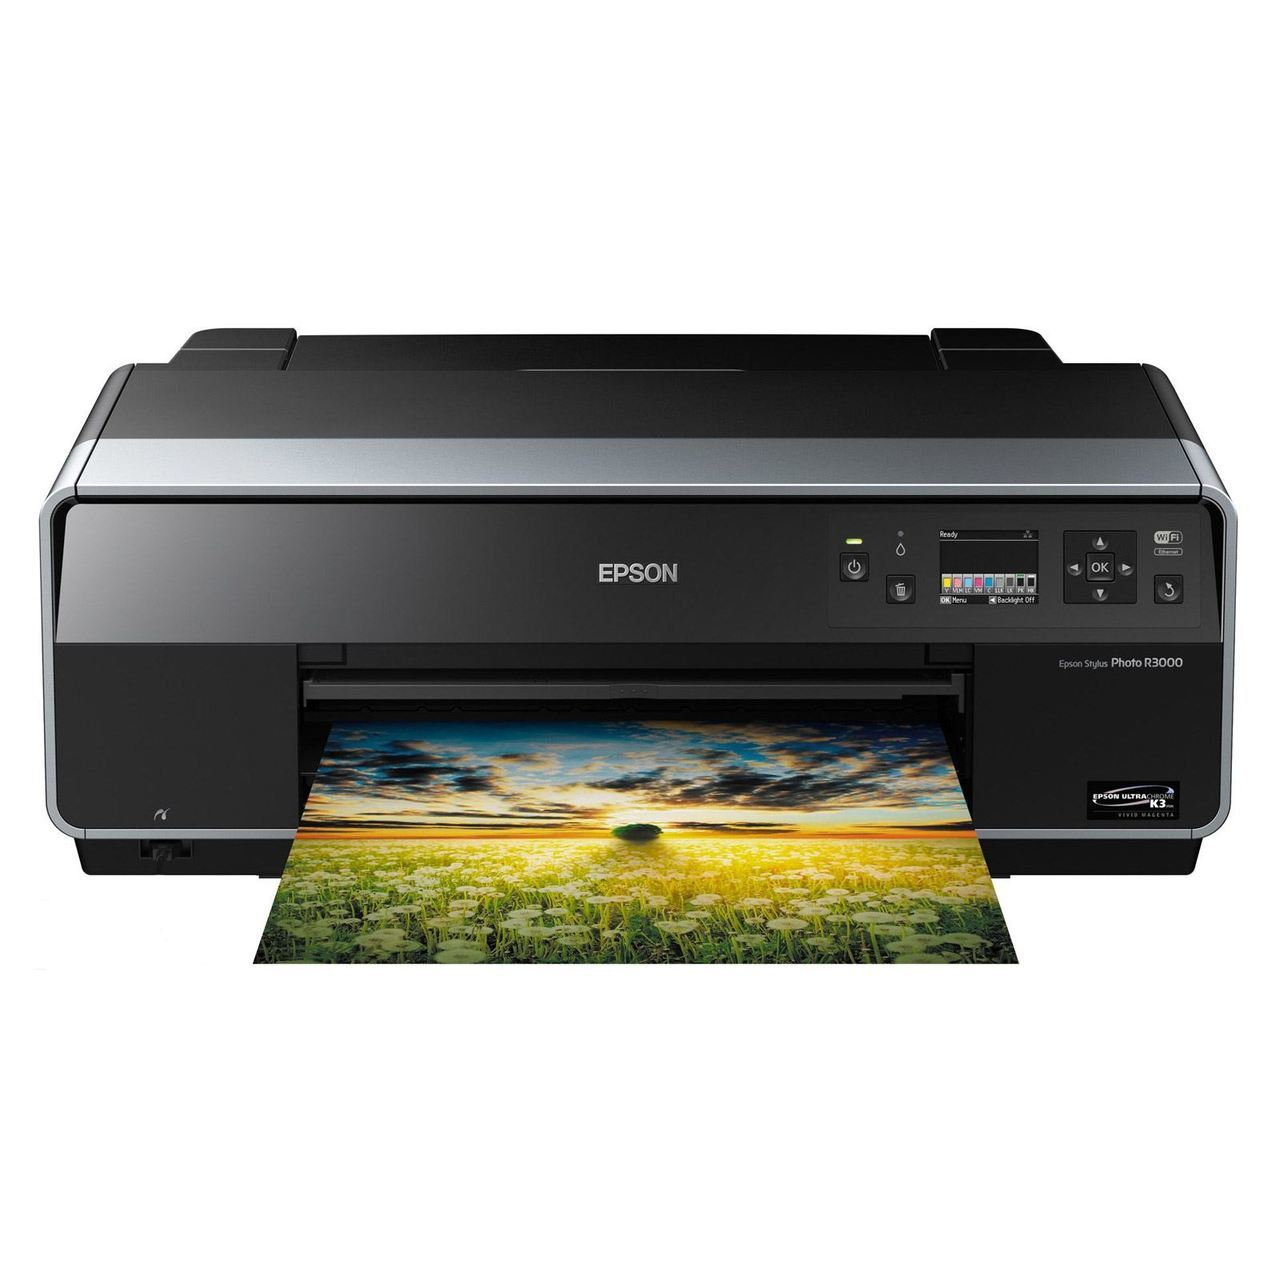 Epson Stylus Photo R3000 Wireless A3 Wide-Format Color Inkjet Printer (C11CA86201)